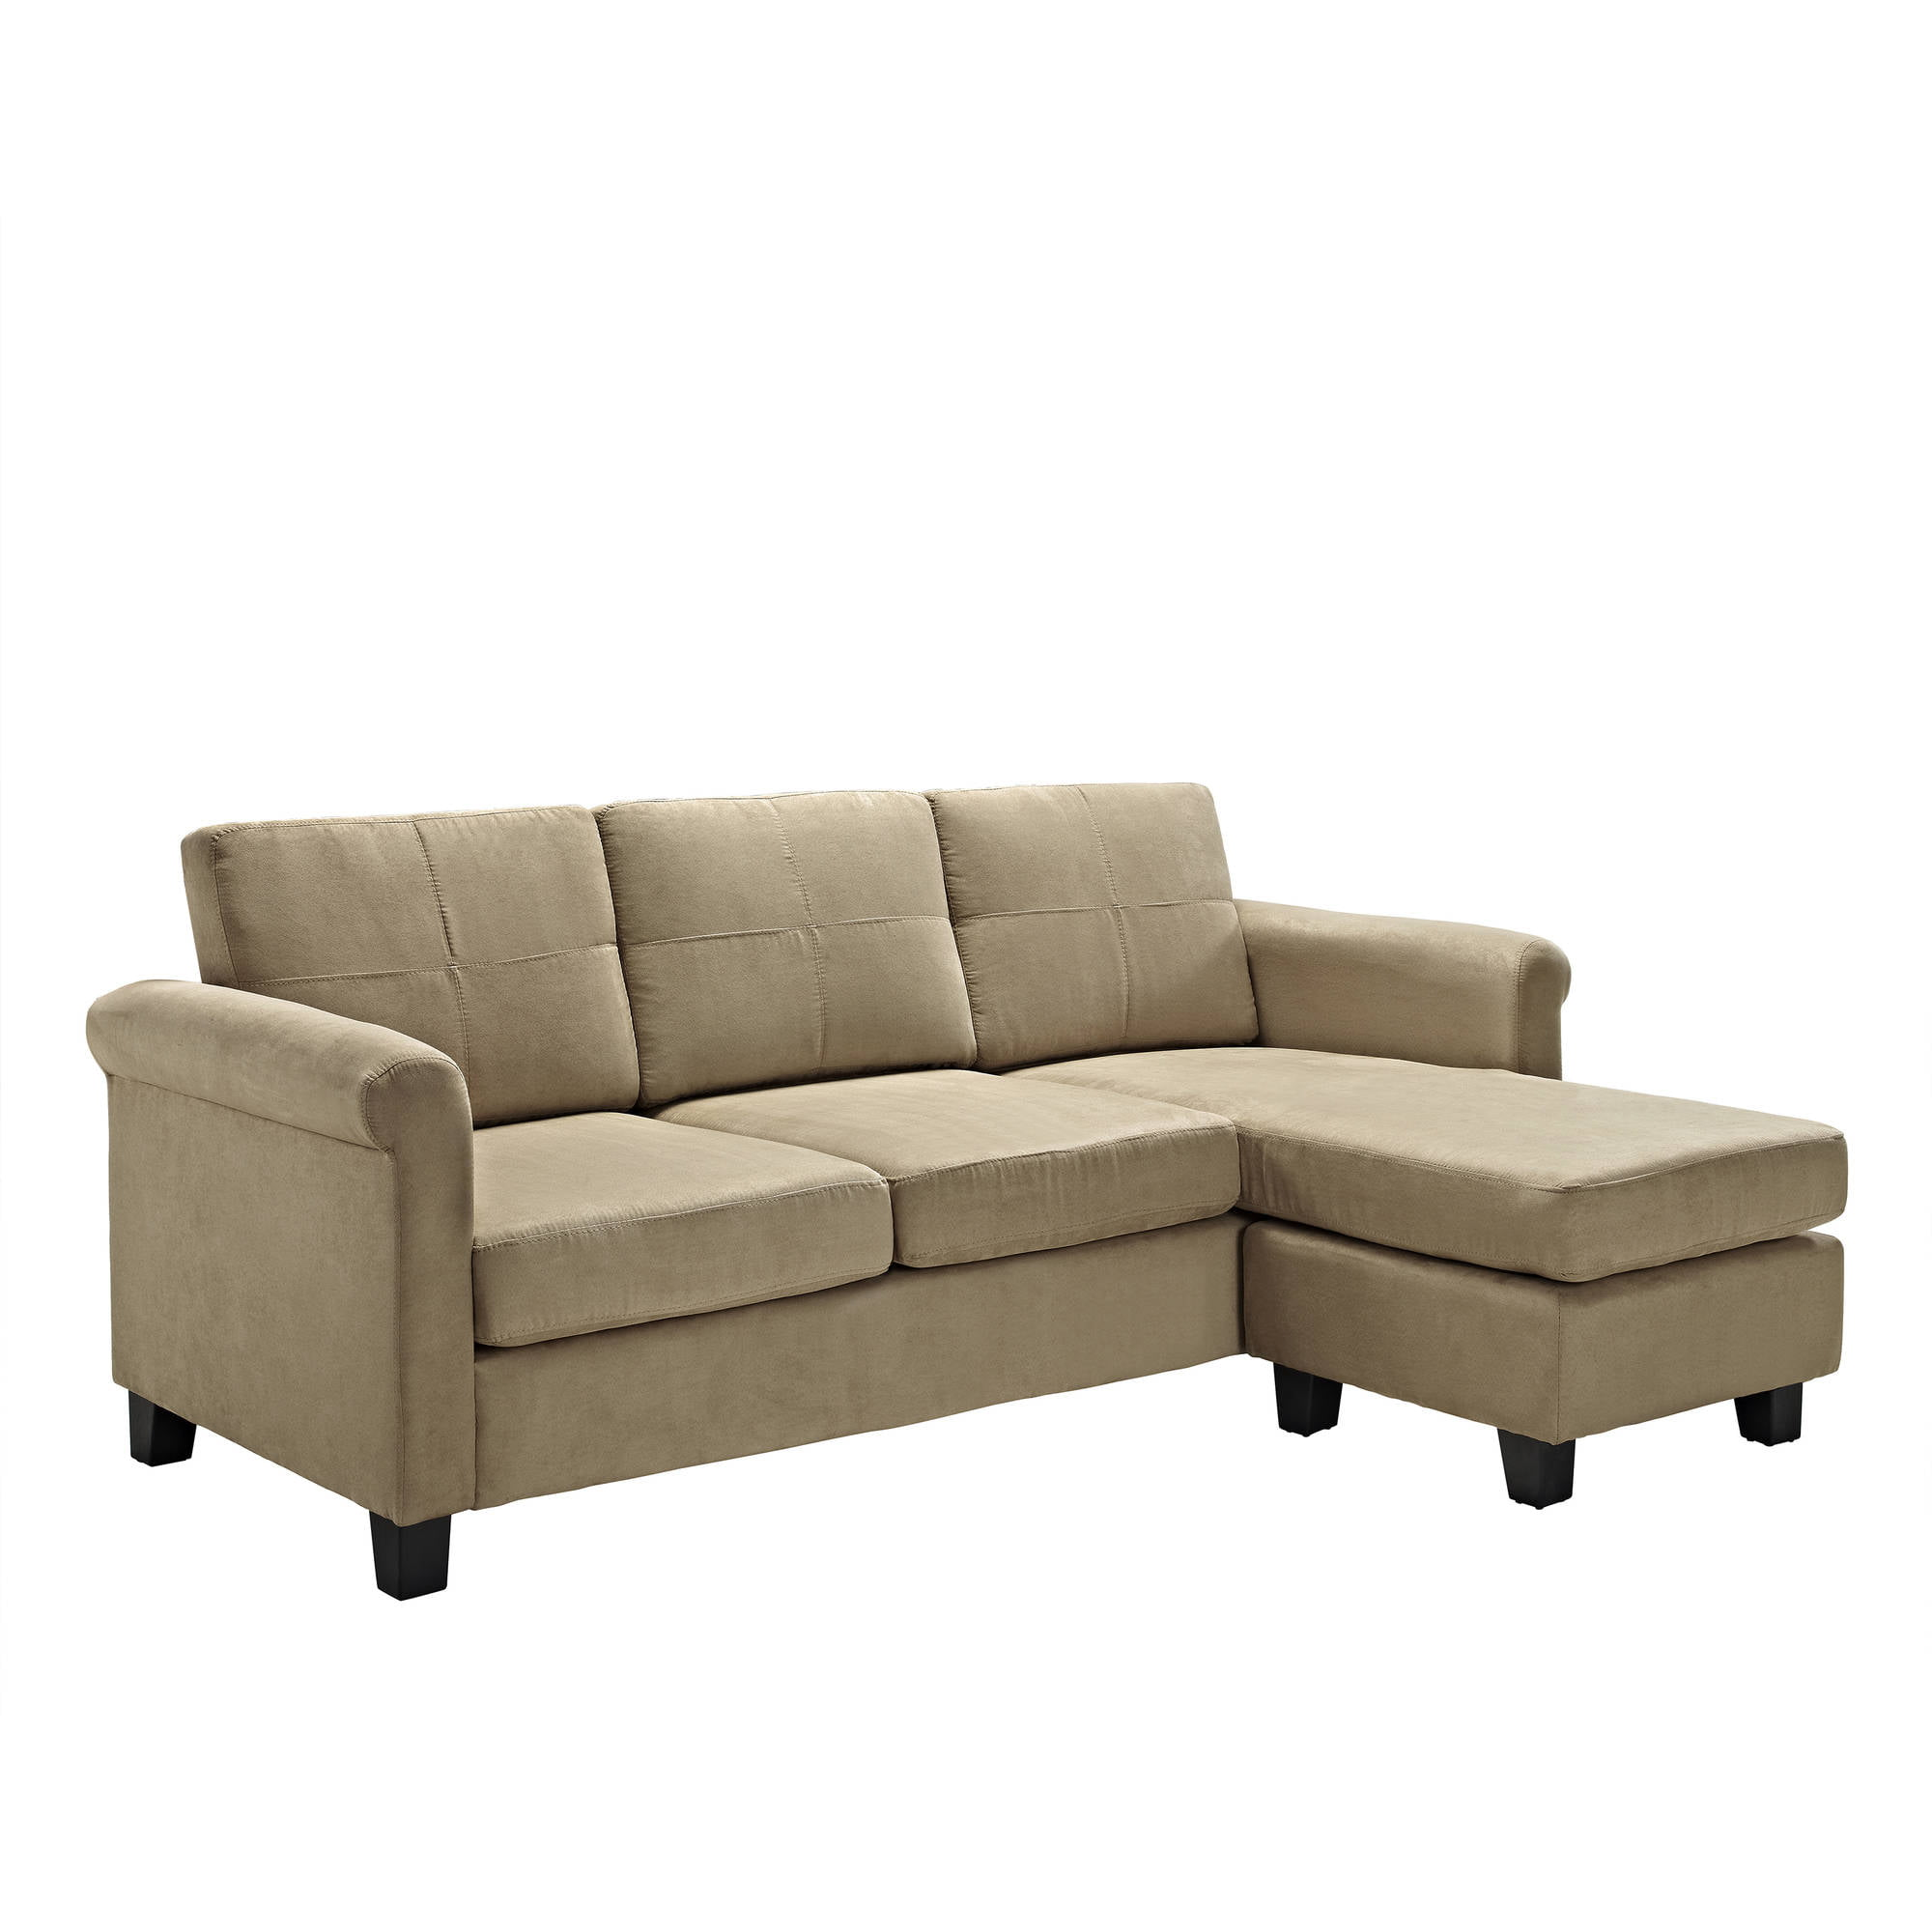 living room furniture for small space. Dorel Living Small Spaces Configurable Sectional Sofa  Multiple Colors Walmart com